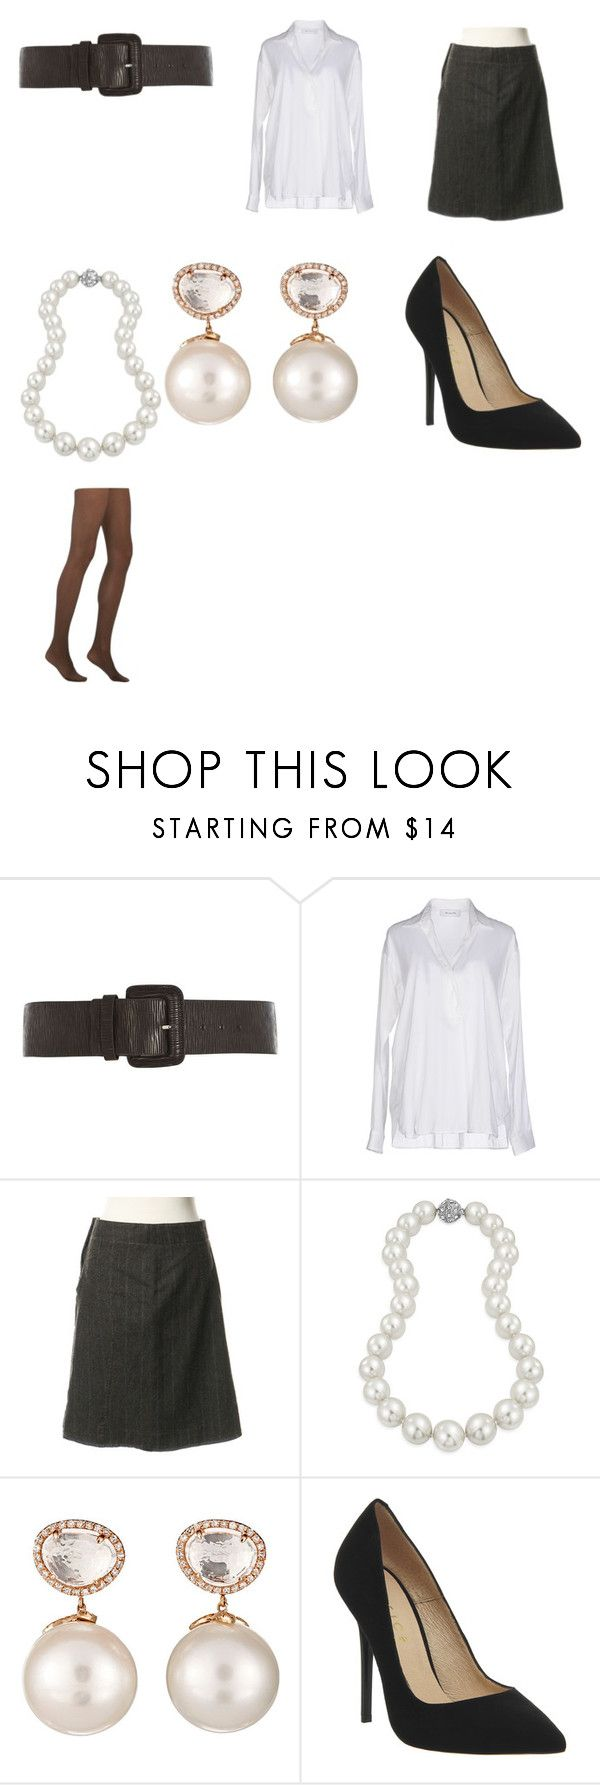 """""""Marcia Gay Harden's introductory outfit as Ms. Cheevus in """"Spy Hard"""""""" by terrence-michael-clay on Polyvore featuring Dorothy Perkins, Aglini, Schumacher, Bling Jewelry, Samira 13, Office and Fogal"""